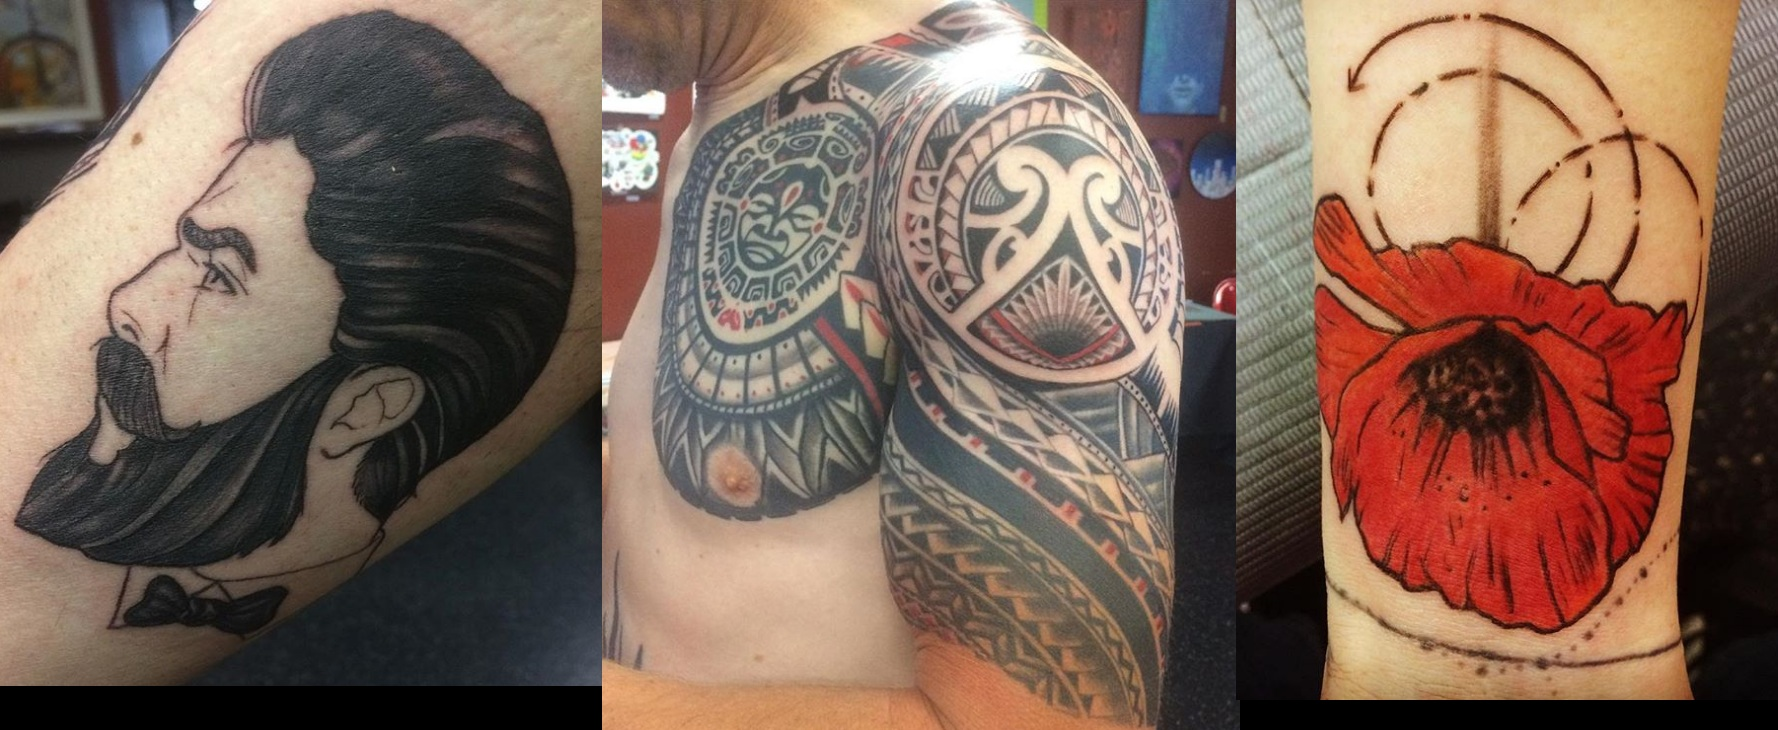 Some of my favorite tattoos Damon has done.